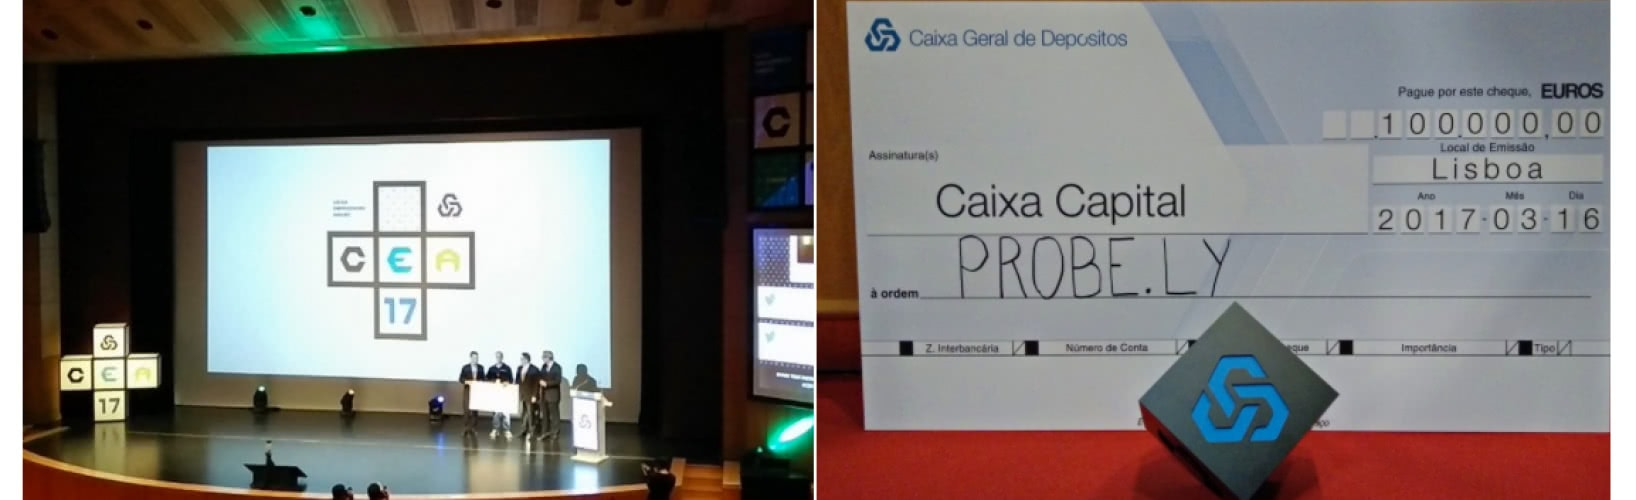 Probe.ly wins Caixa Empreender Award